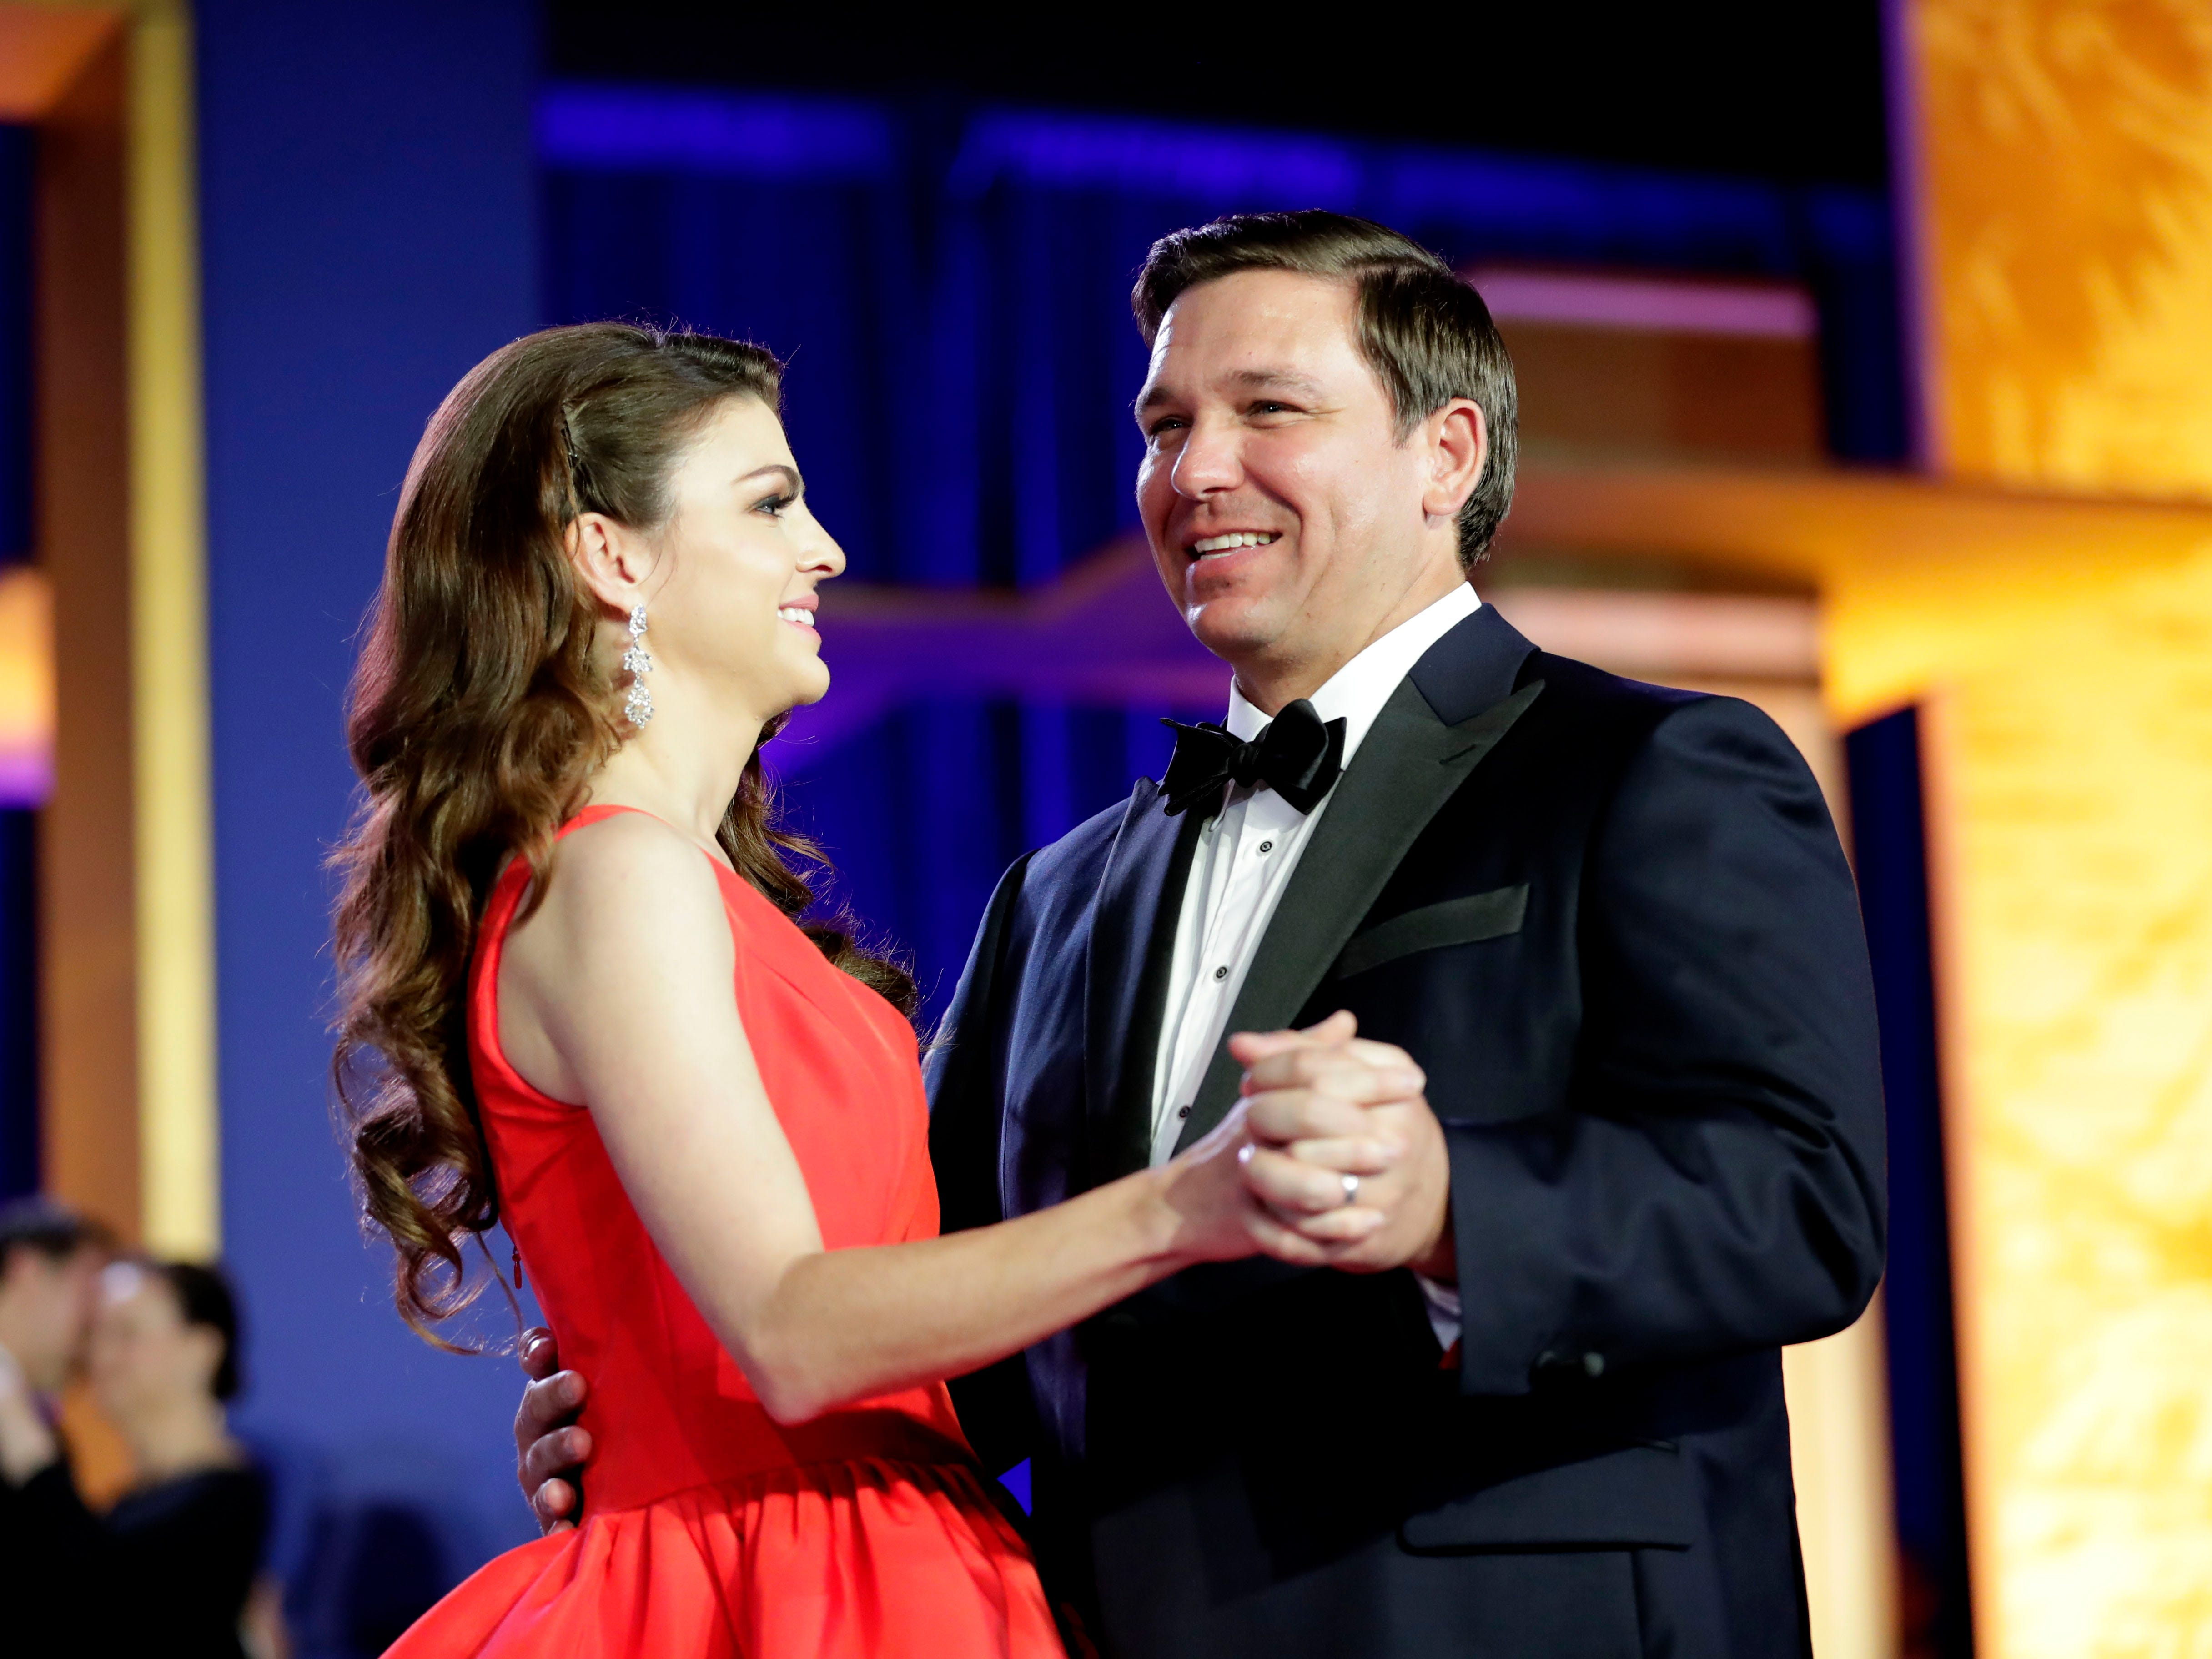 Hundreds of guests from all over Florida attend Florida's 46th Governor's Inaugural Ball at the Tucker Civic Center, Tuesday, Jan. 8, 2019. Gov. Ron DeSantis flashes a big smile as he dances with his wife, first lady Casey DeSantis.